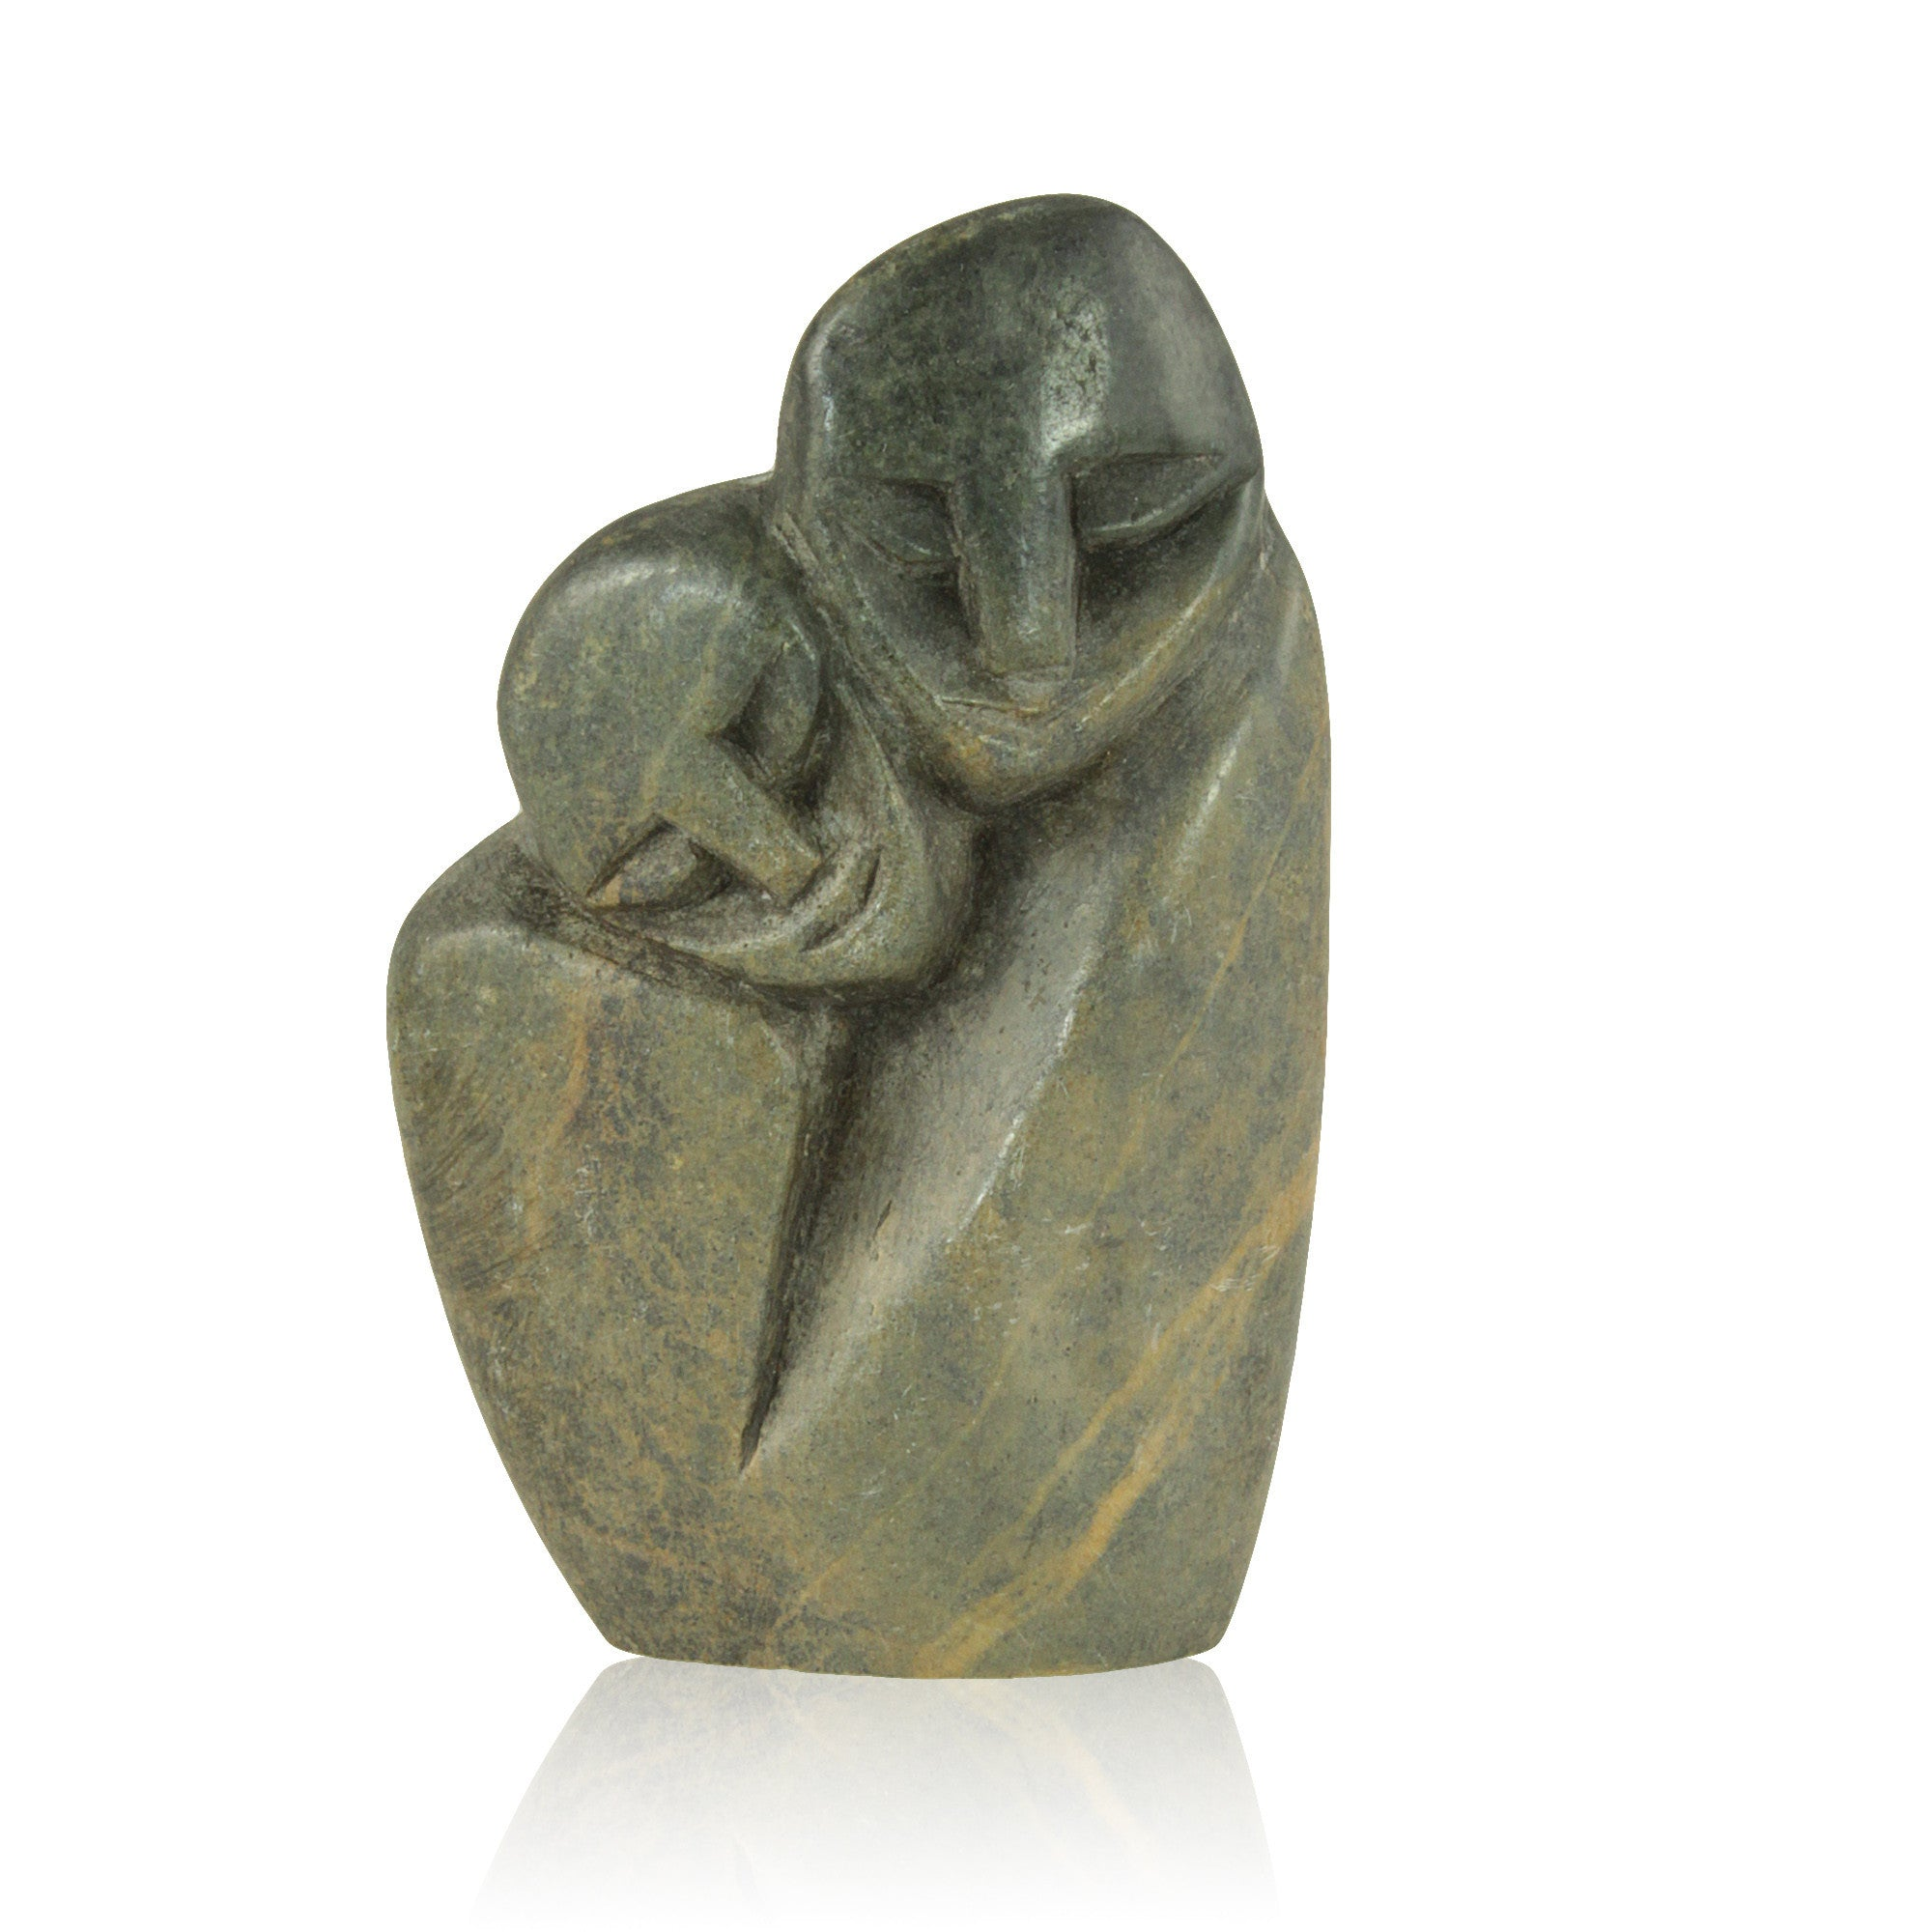 Hand Made Zimbabwean Mother and Child Abstract Shona Sculpture